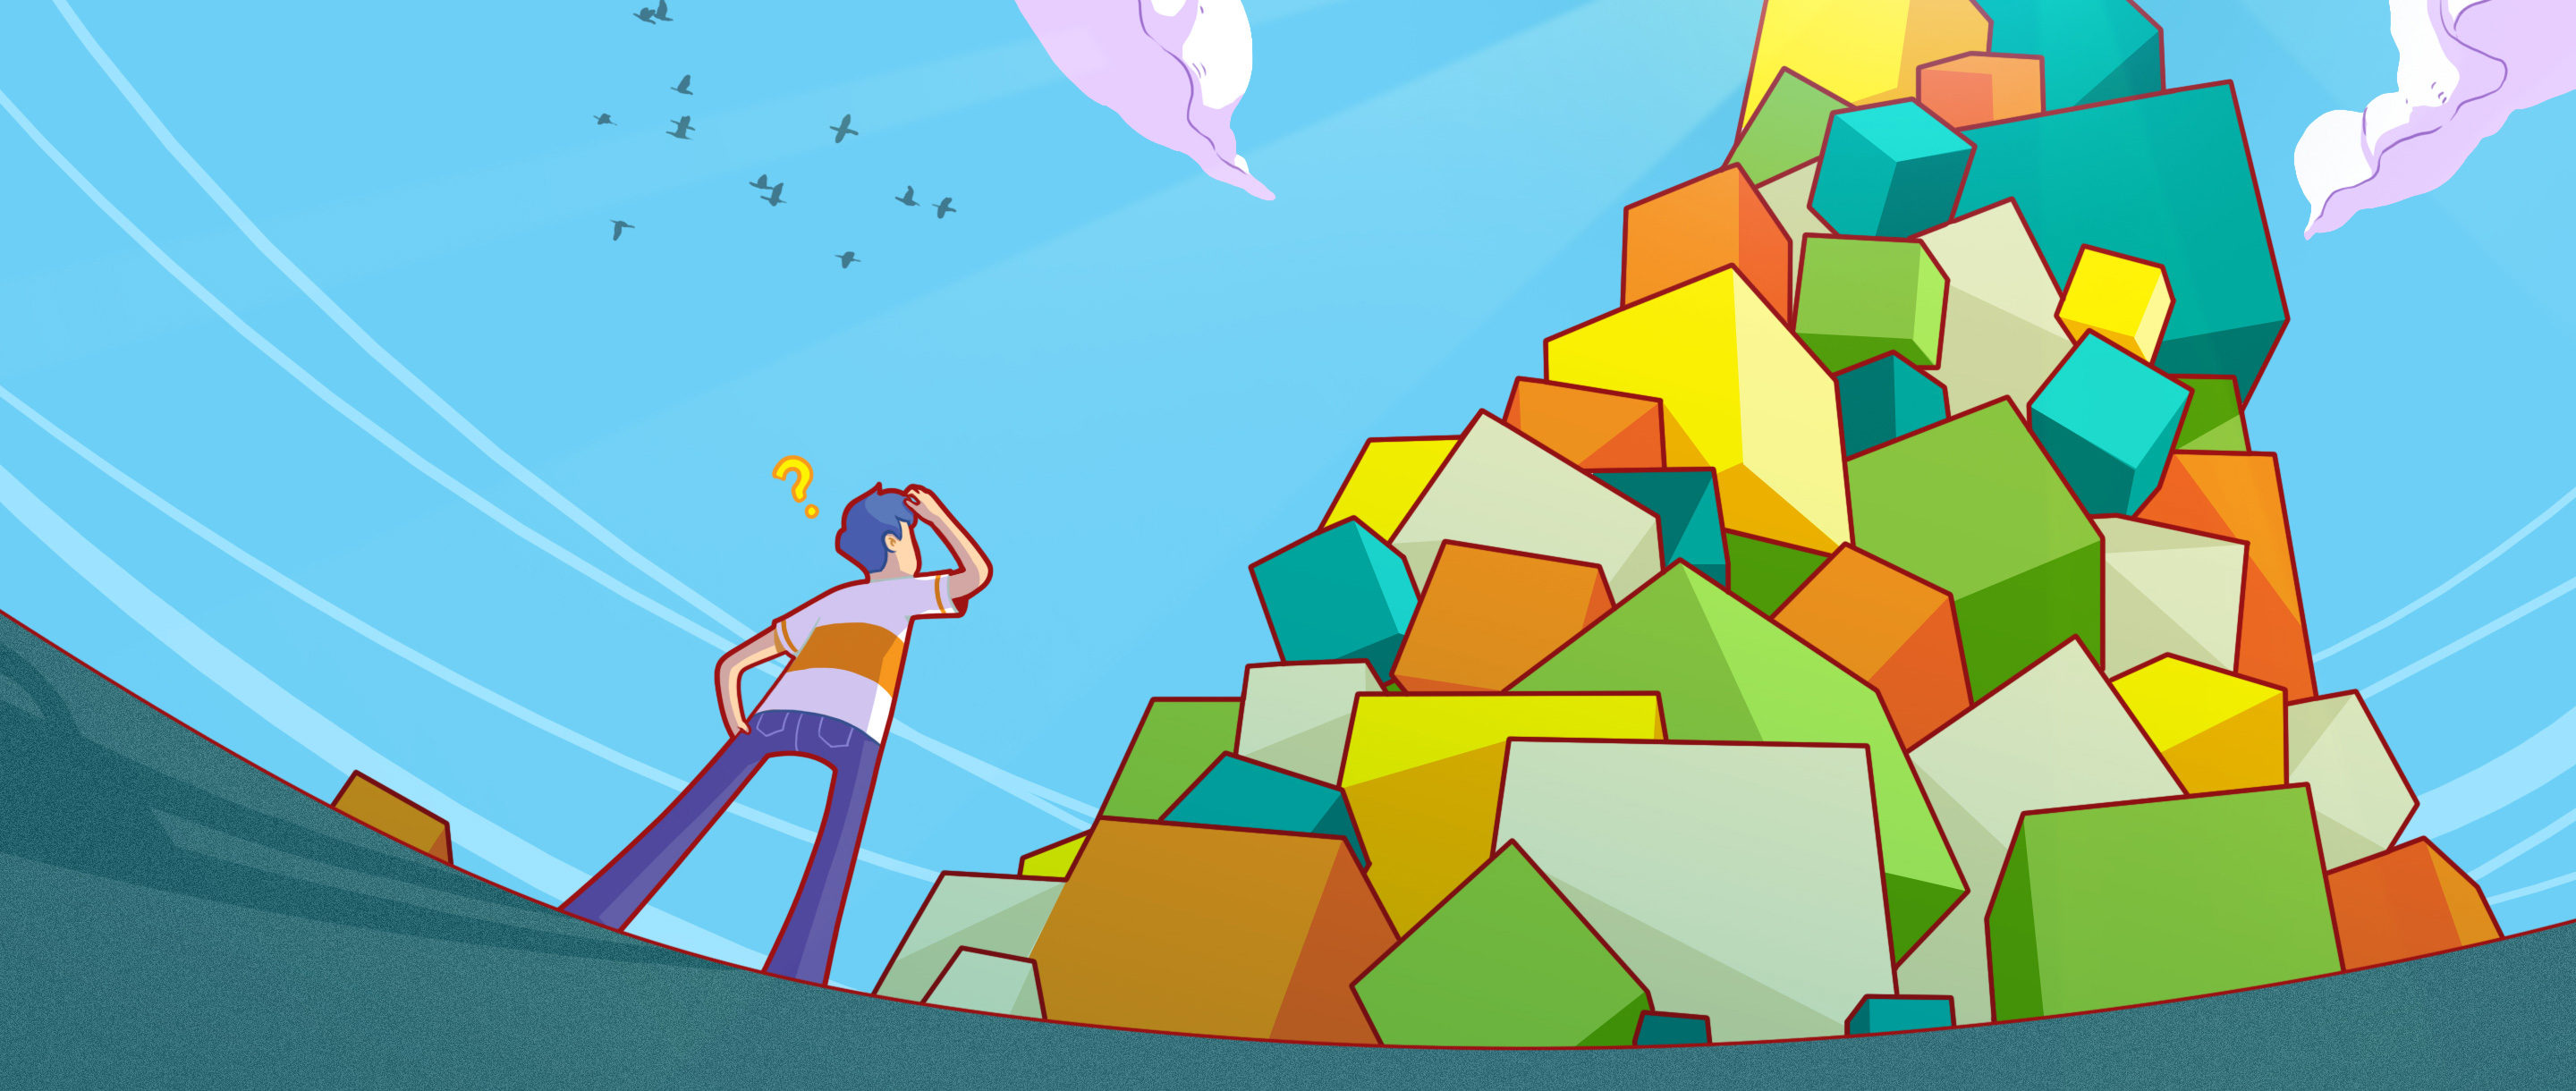 An illustration of a mathematician staring up at an infinite pile of cubes of varying sizes and colors.